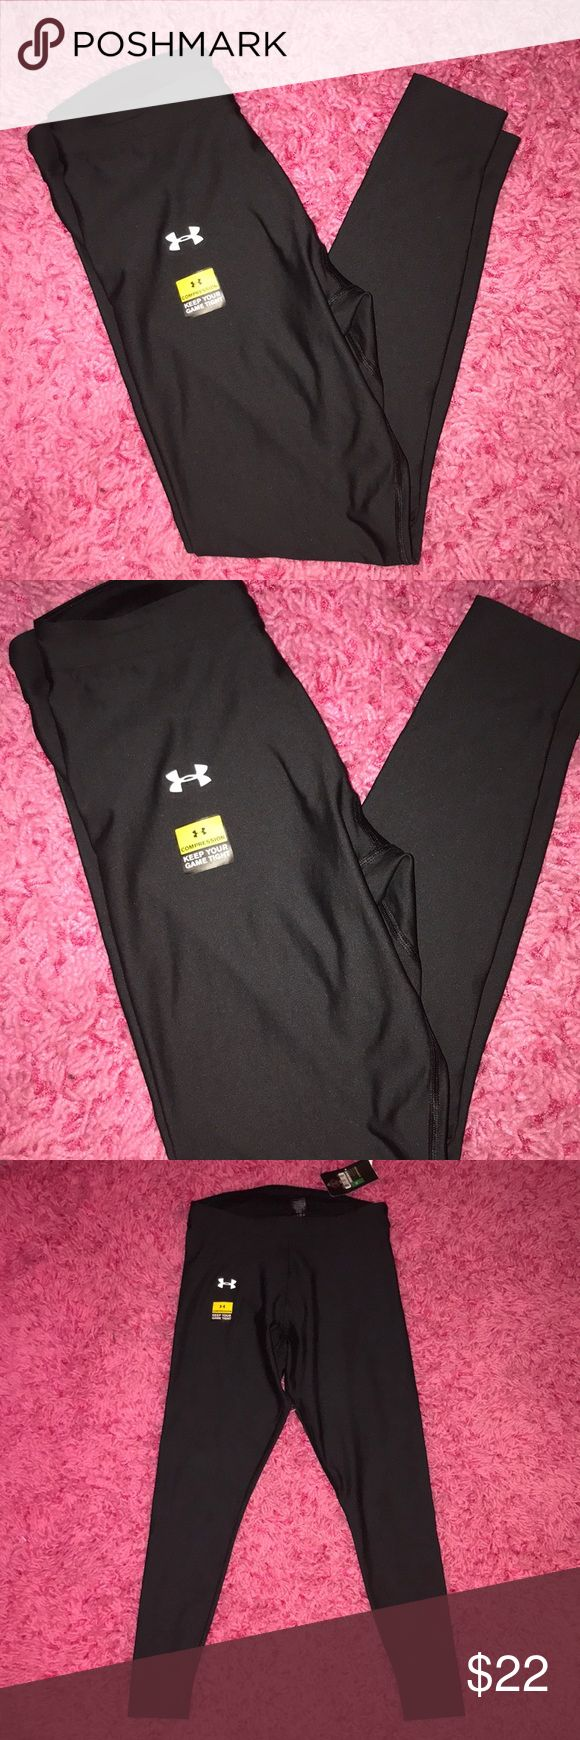 Under Armour Compression Leggings Men's under Armour compression black leggings. Are definitely unisex and could also be a women's L/XL. Brand new with tags Under Armour Pants